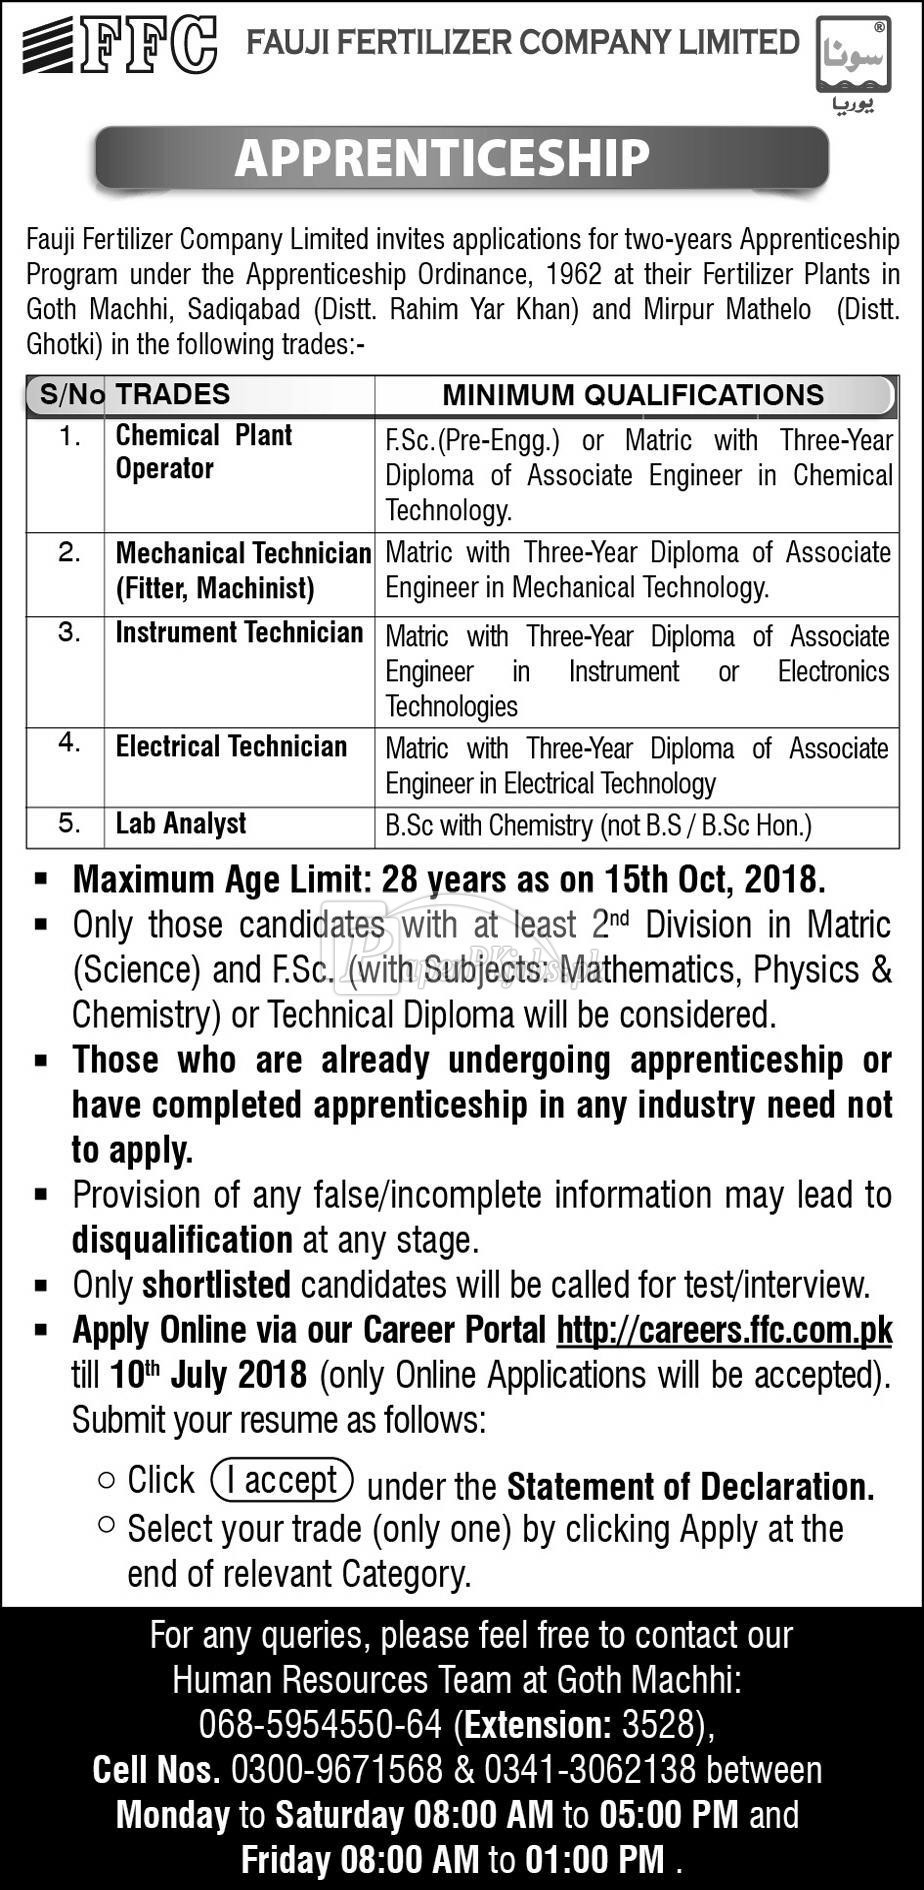 Fauji Fertilizer Company Ltd Apprenticeship 2018